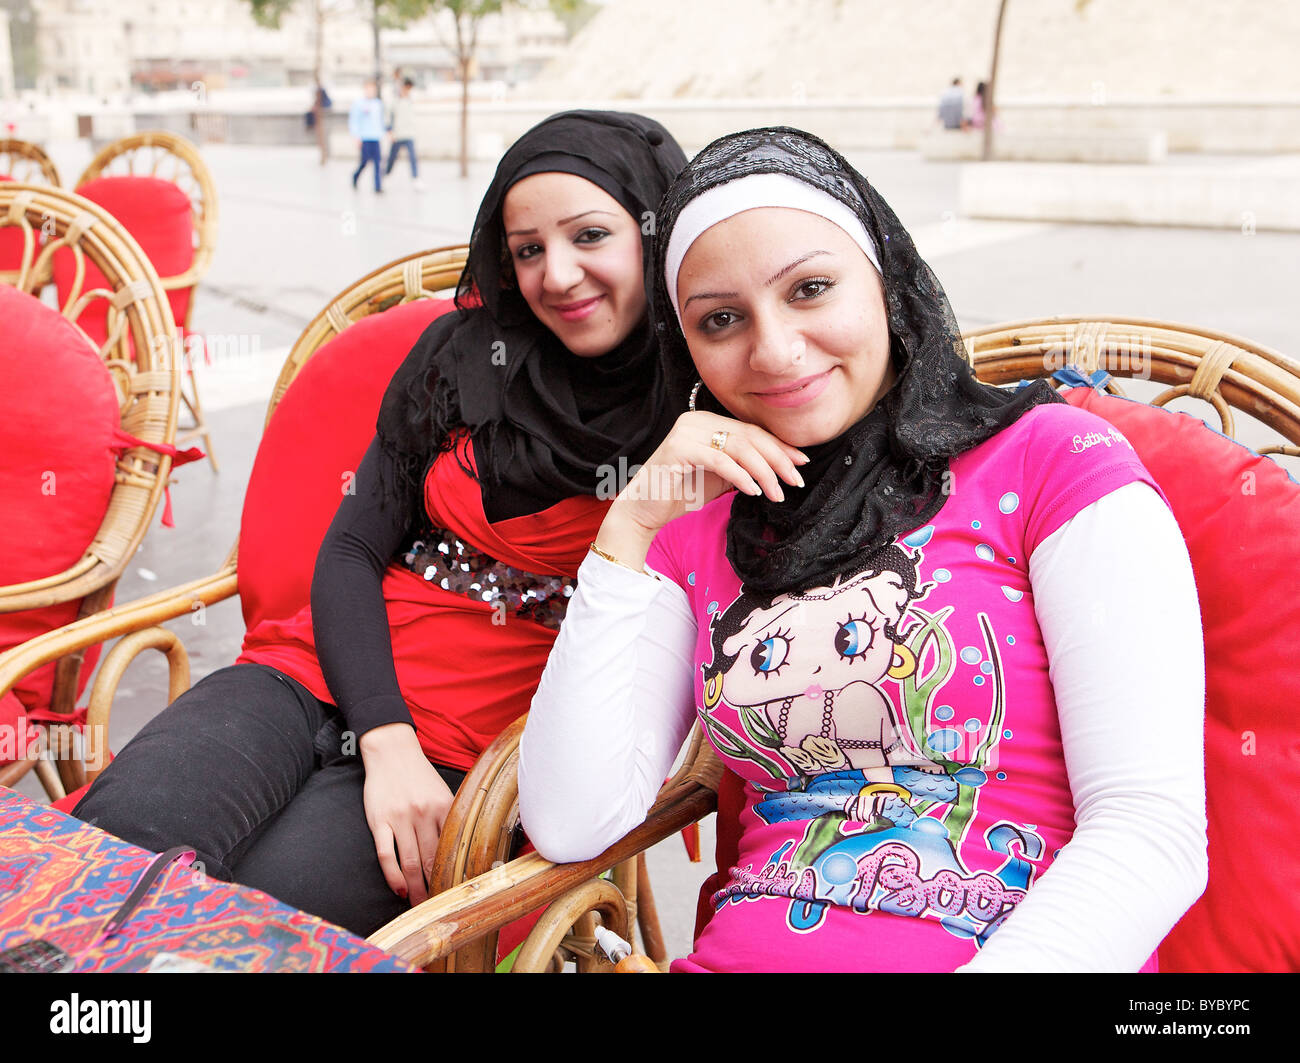 aleppo single girls Aleppo's best 100% free online dating site meet loads of available single women in aleppo with mingle2's aleppo dating services find a girlfriend or lover in aleppo, or just have fun flirting online with aleppo single girls.